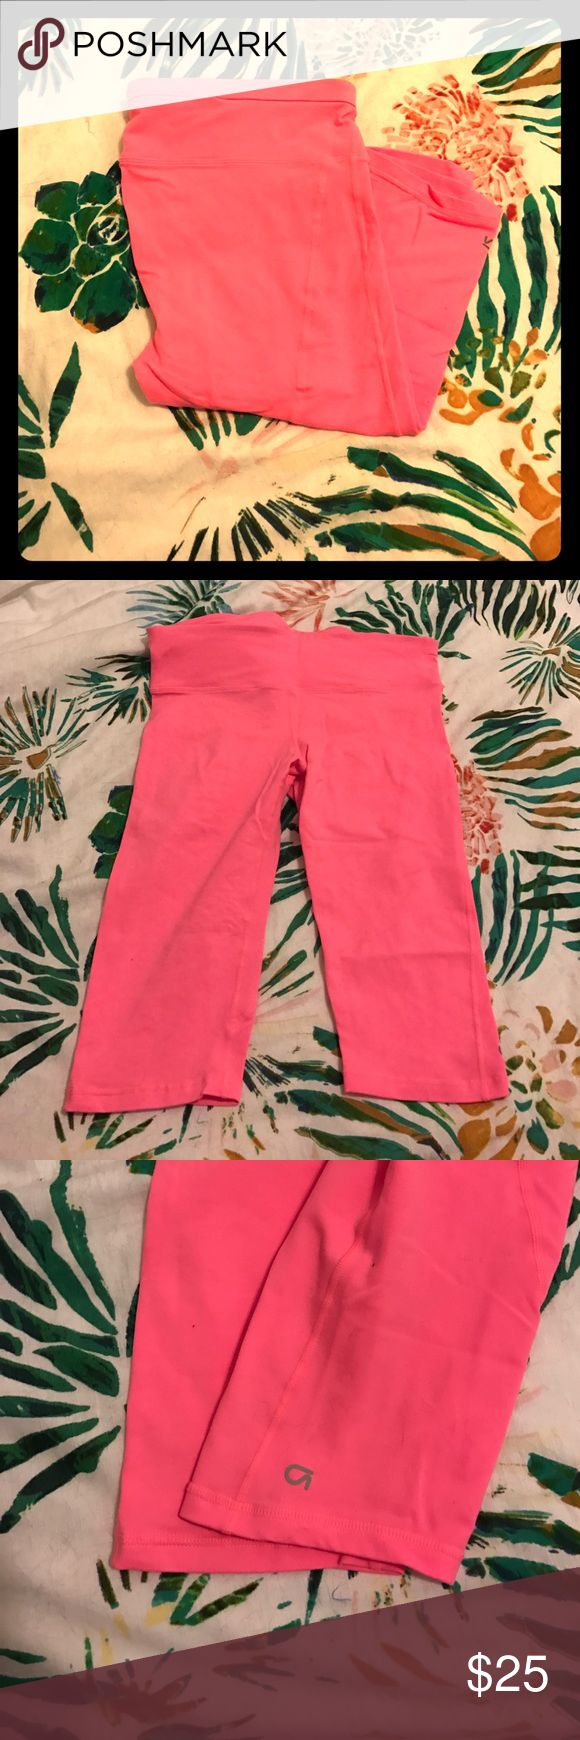 gap fit neon coral Capri leggings Great condition! Bright coral color, the pictures seem more pink but they are definitely coral. Includes an adjustable waist and small pocket. The are size large but would fit a medium GAP Pants Leggings